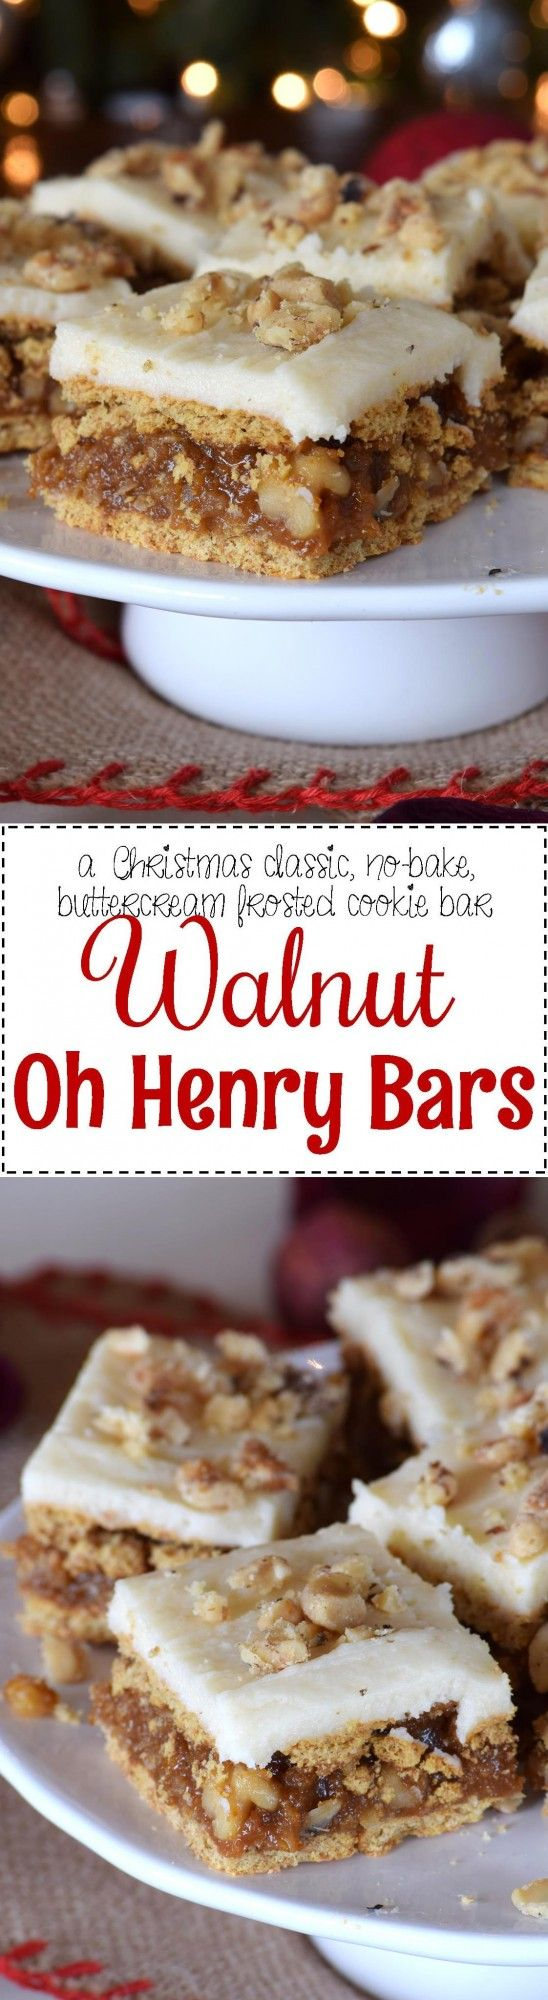 A caramel, walnut, and coconut filling, sandwiched between graham crackers, and topped with a simple buttercream frosting. Walnut Oh Henry Bars are a deliciously classic Newfoundland Christmastime recipe. I can't remember a Christmas during my childhood that did not have…